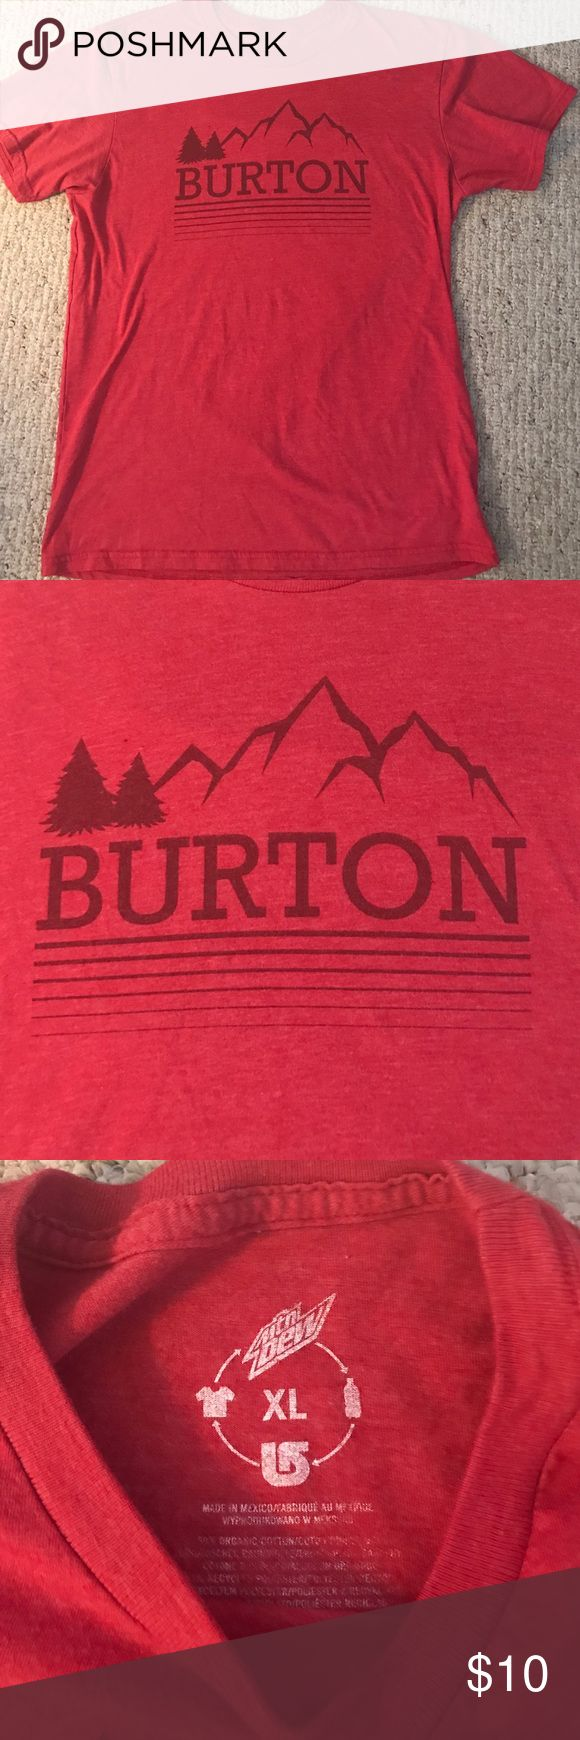 Burton T-shirt Burton t-shirt slim fit cut fits like a large!! Burton Shirts Tees - Short Sleeve